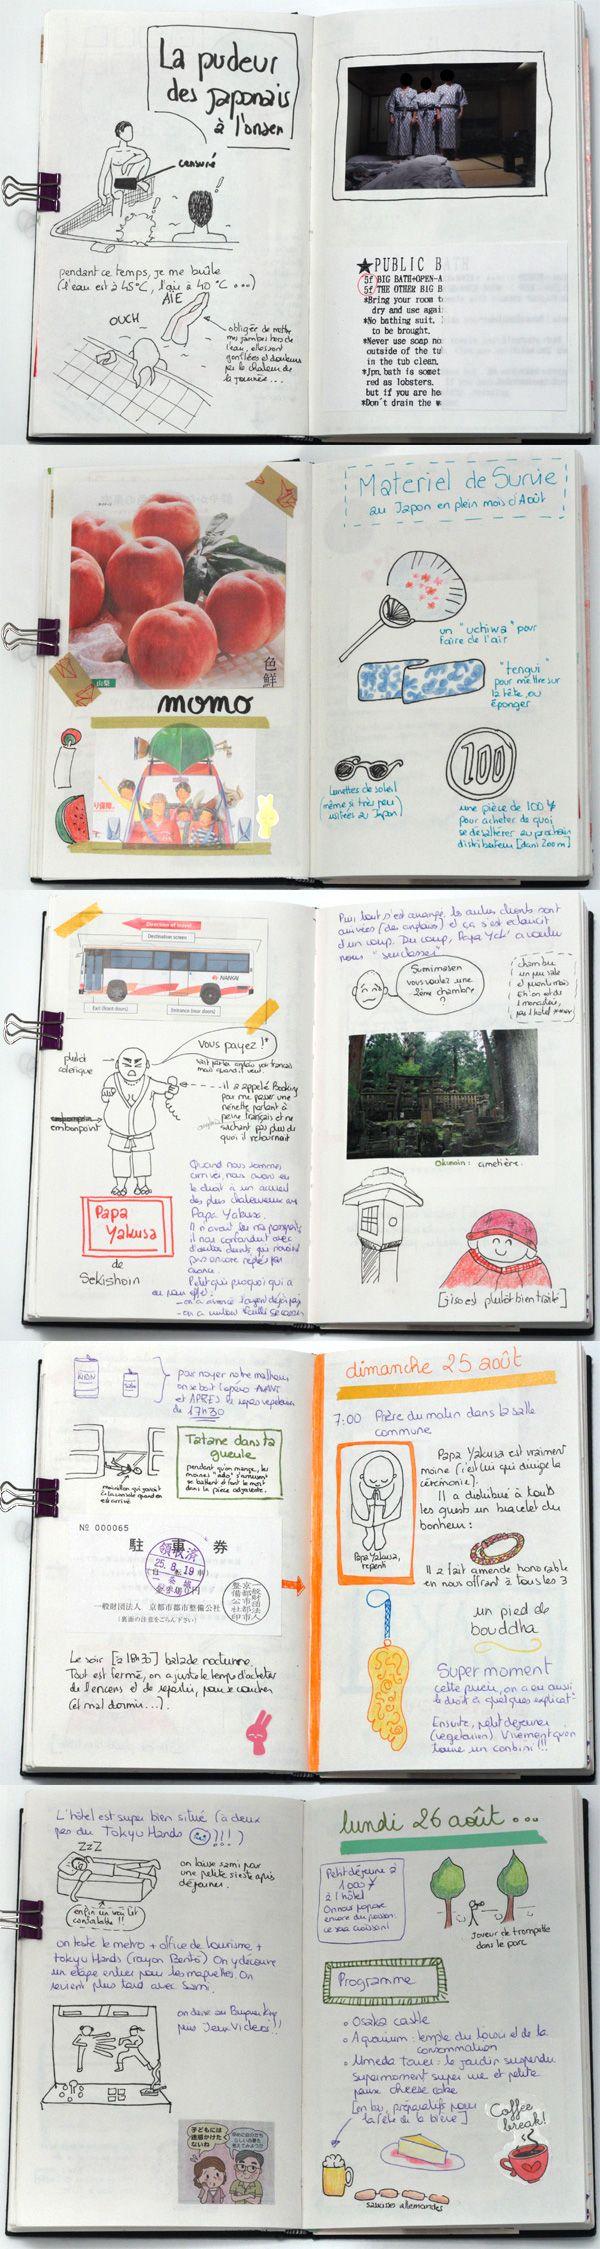 Carnet de voyage au Japon Travel sketchbook in Japan